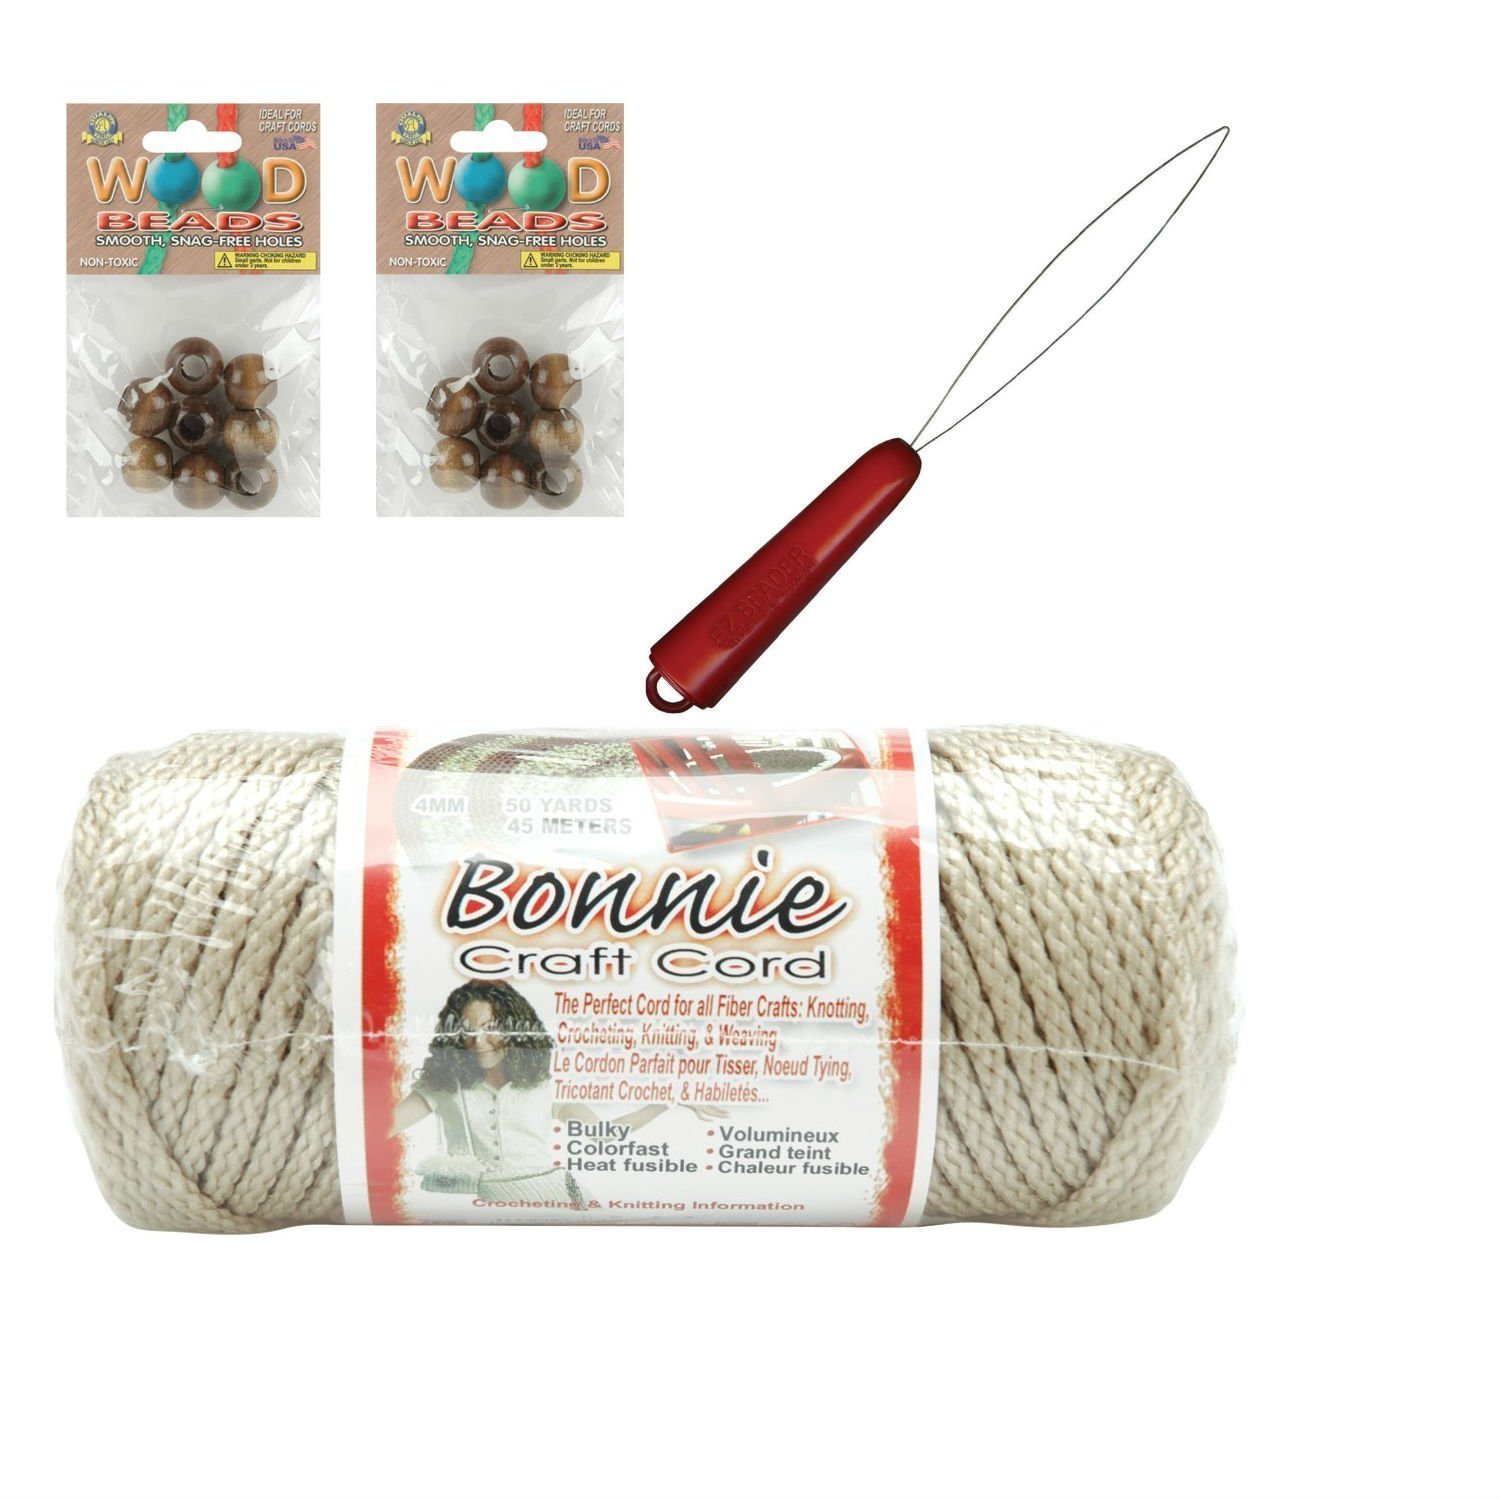 "Macrame kit; Bonnie Craft Cord Bundled with Wooden Beads, 2 2"" brass rings, and EZ Beader"